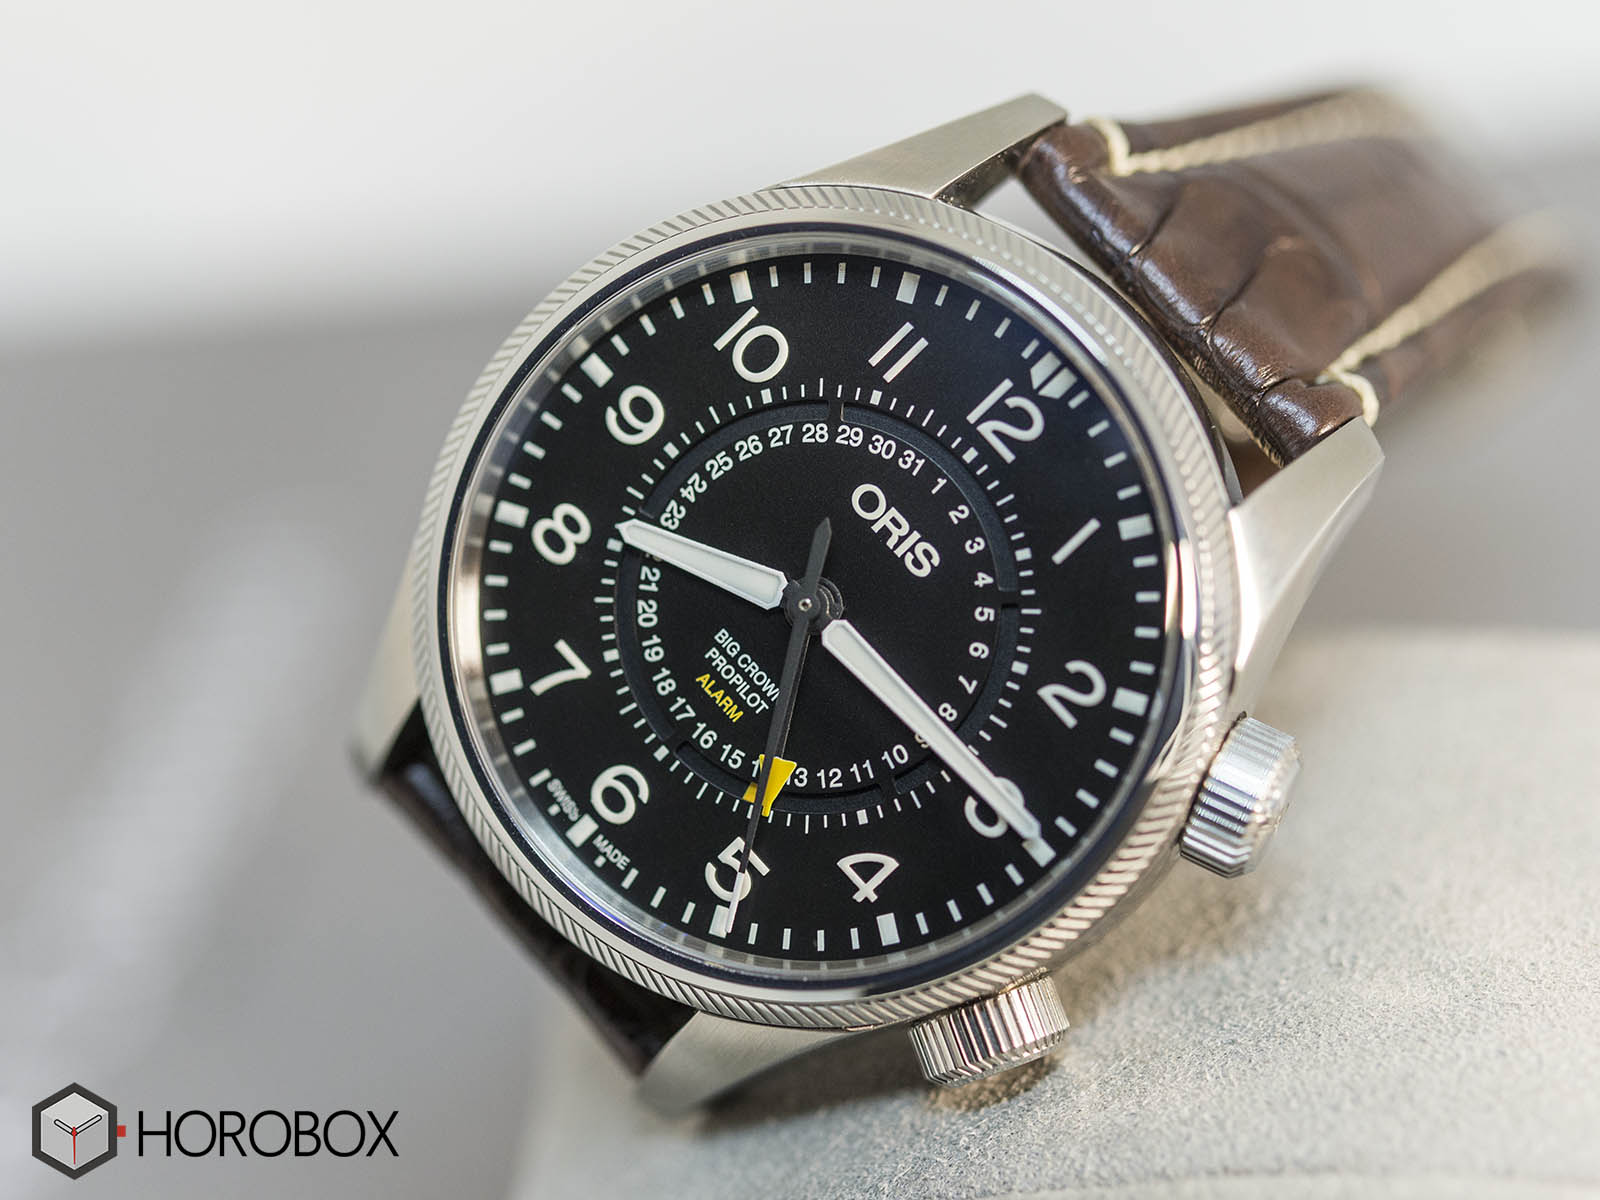 oris-big-crown-propilot-alarm-limited-edition-01-910-7745-4084-4.jpg